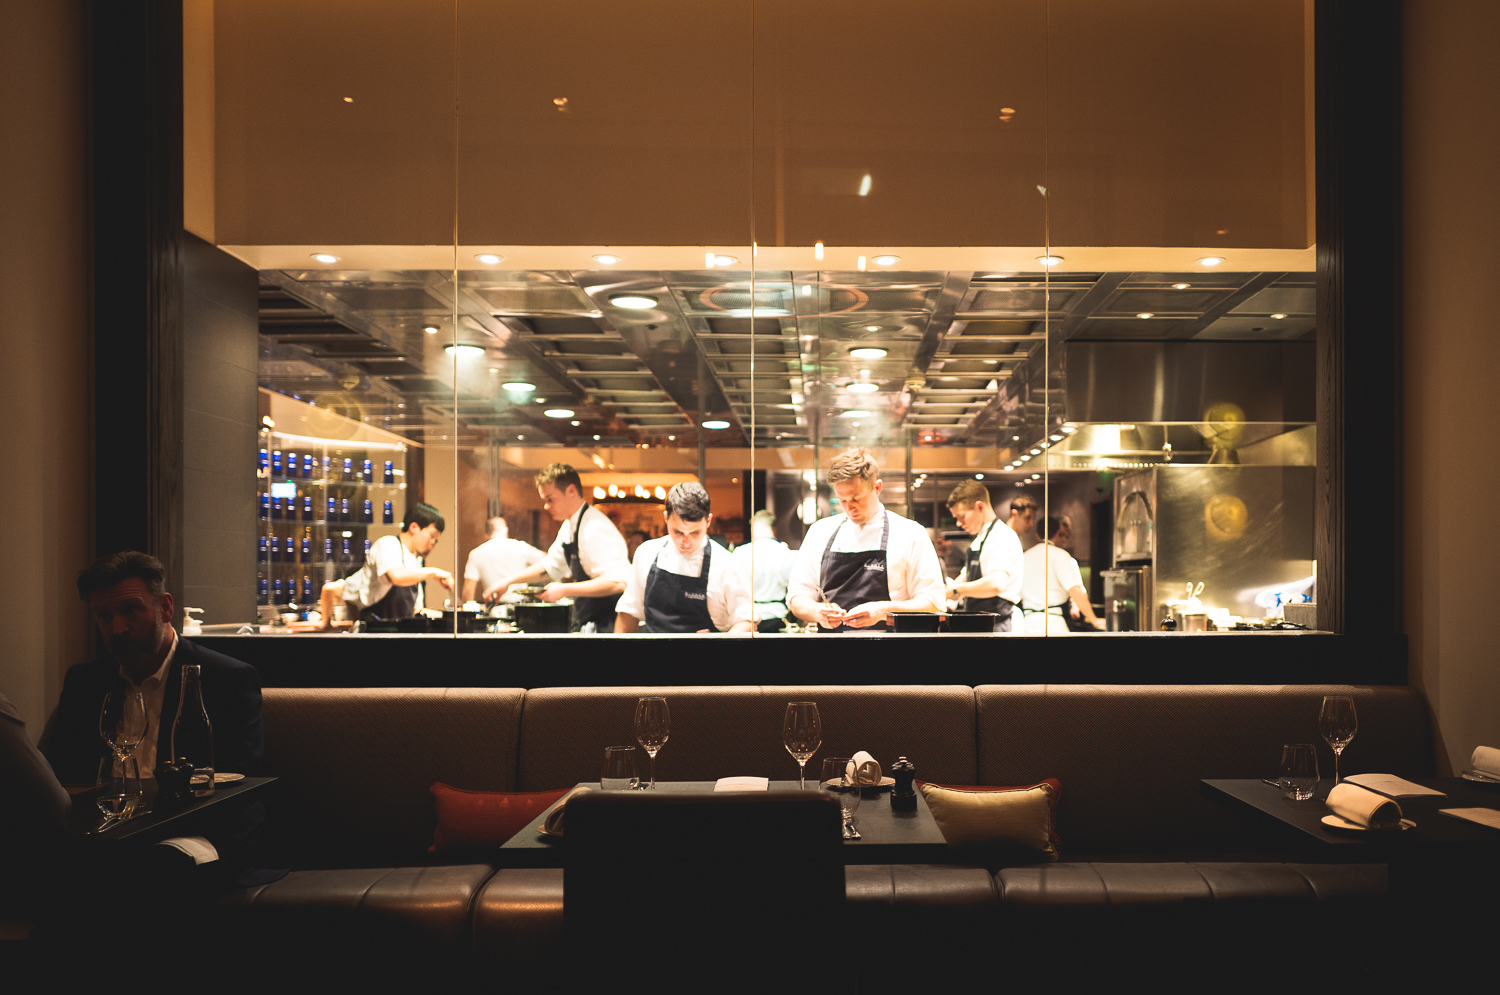 The chefs working away, visible from the dining area through a large pane of glass.